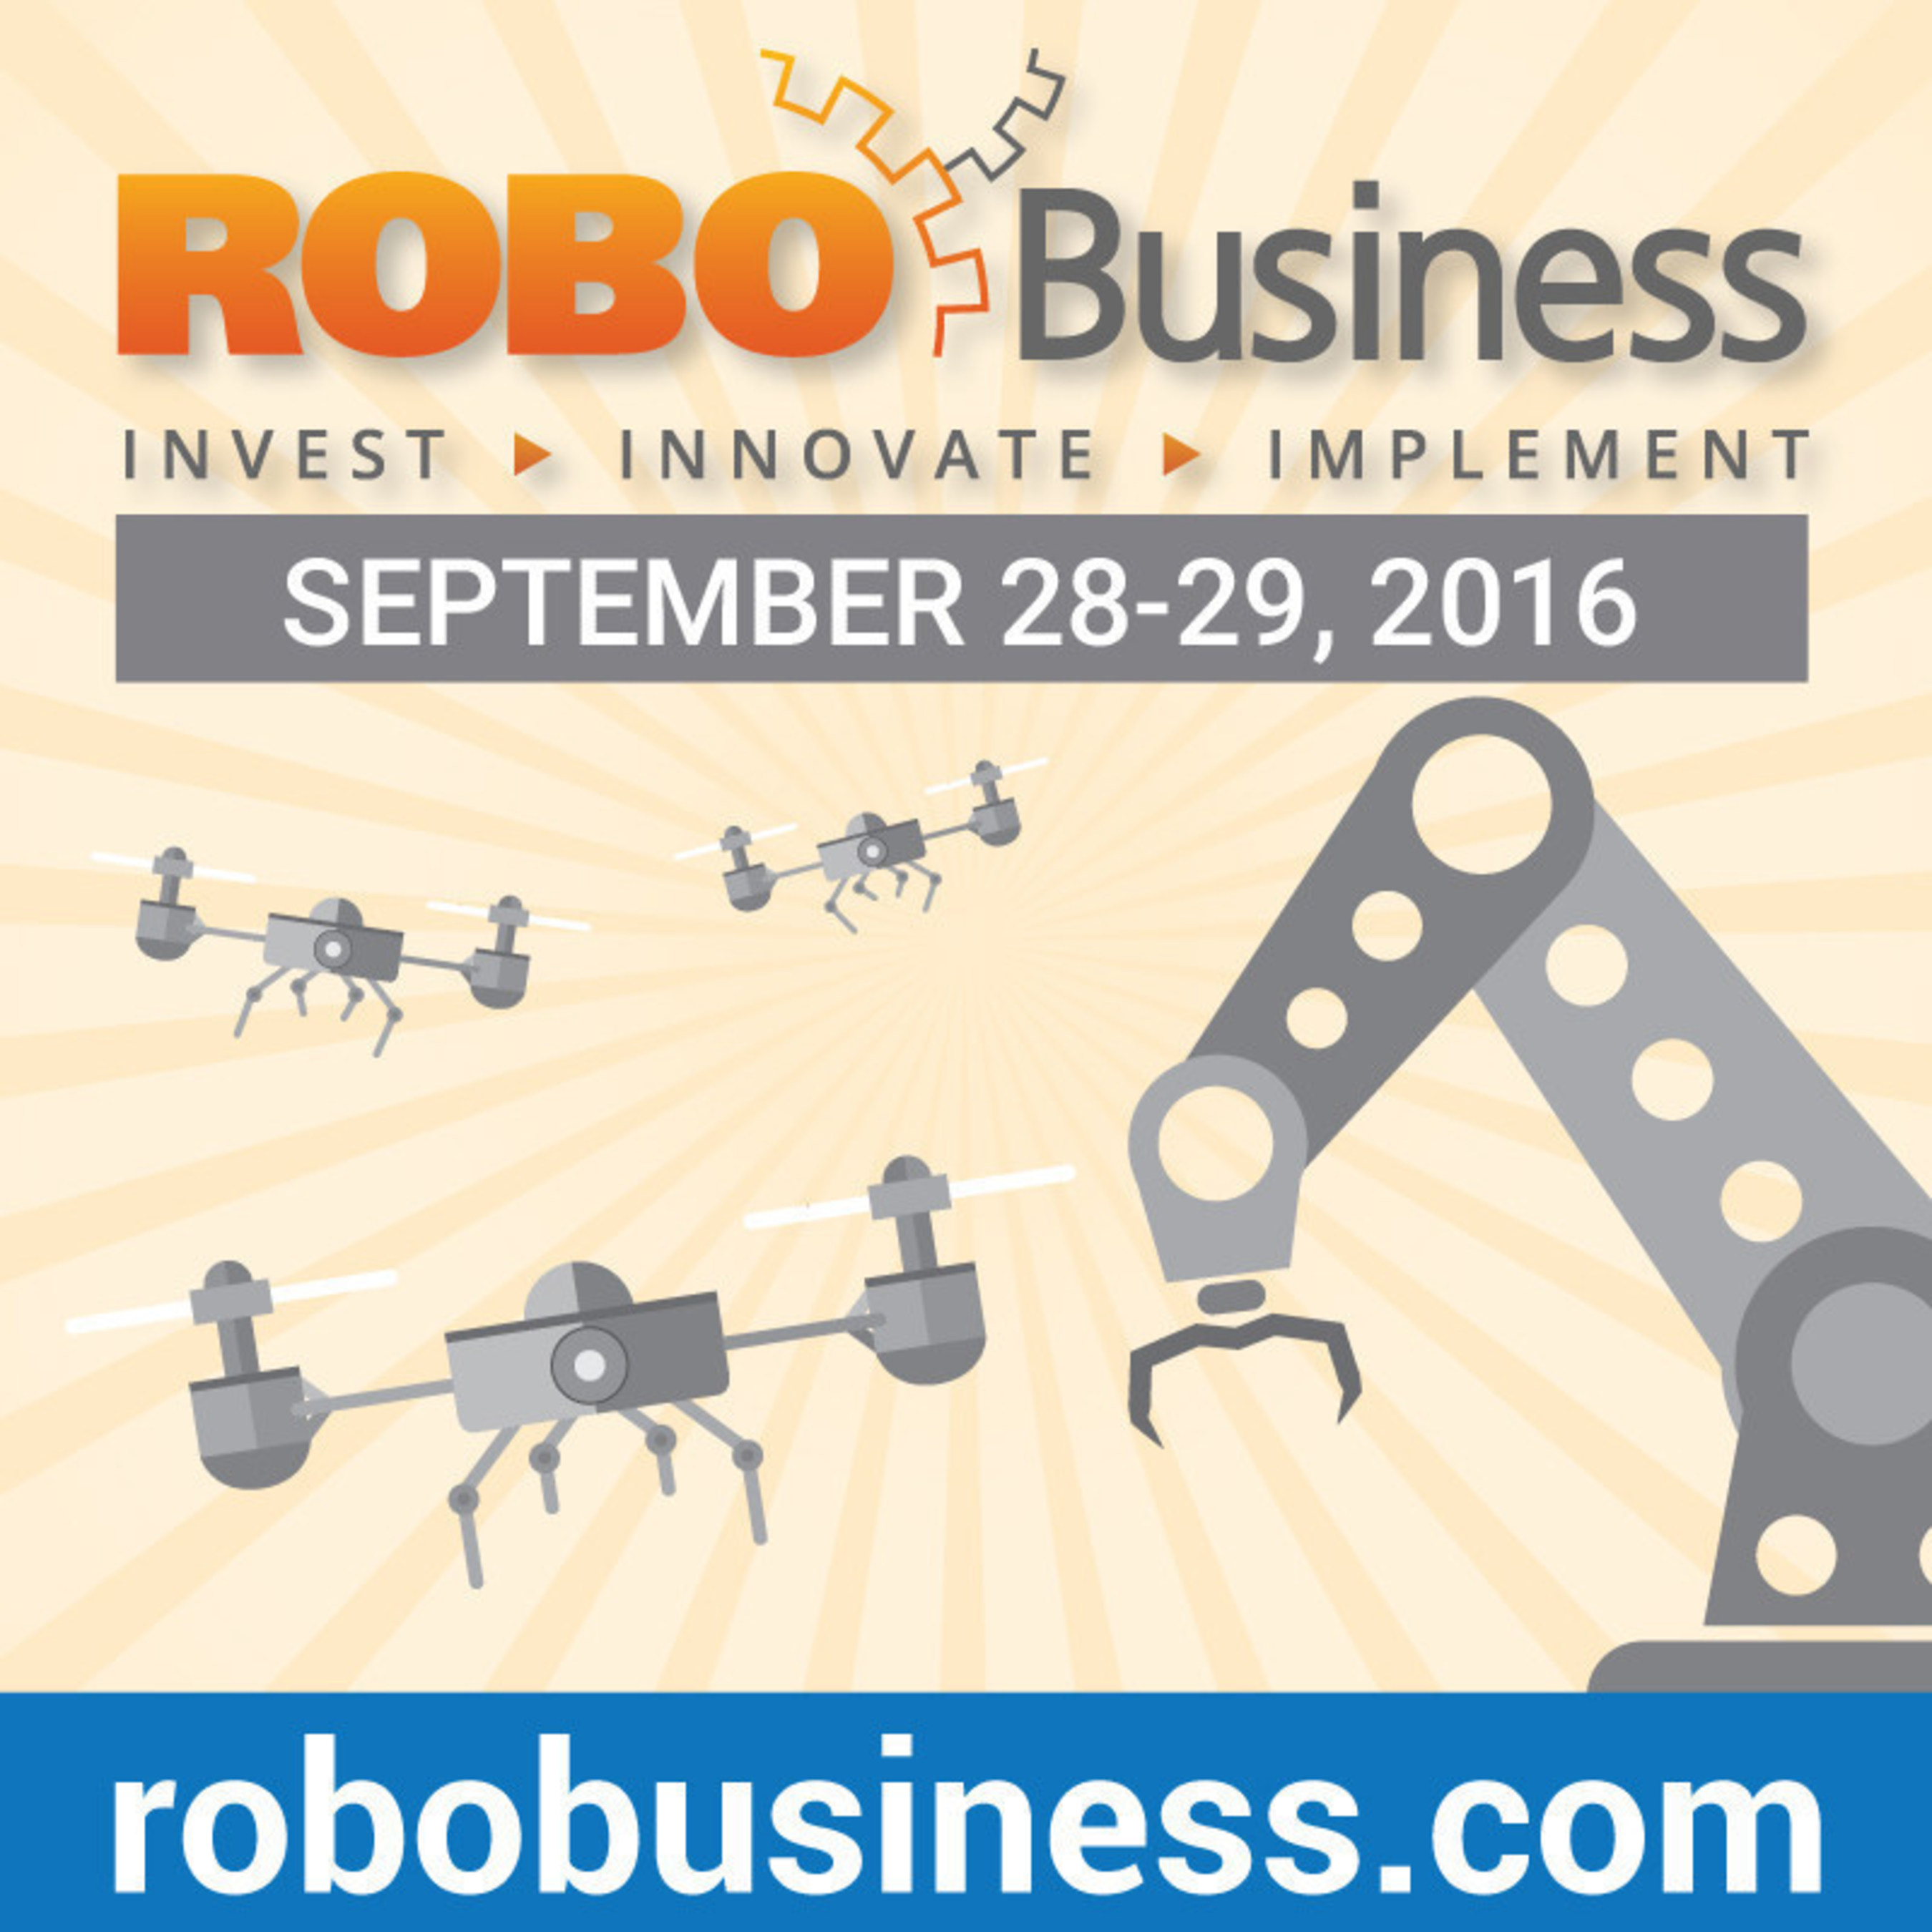 Robot Revolution Takes Center Stage at Silicon Valley Conference